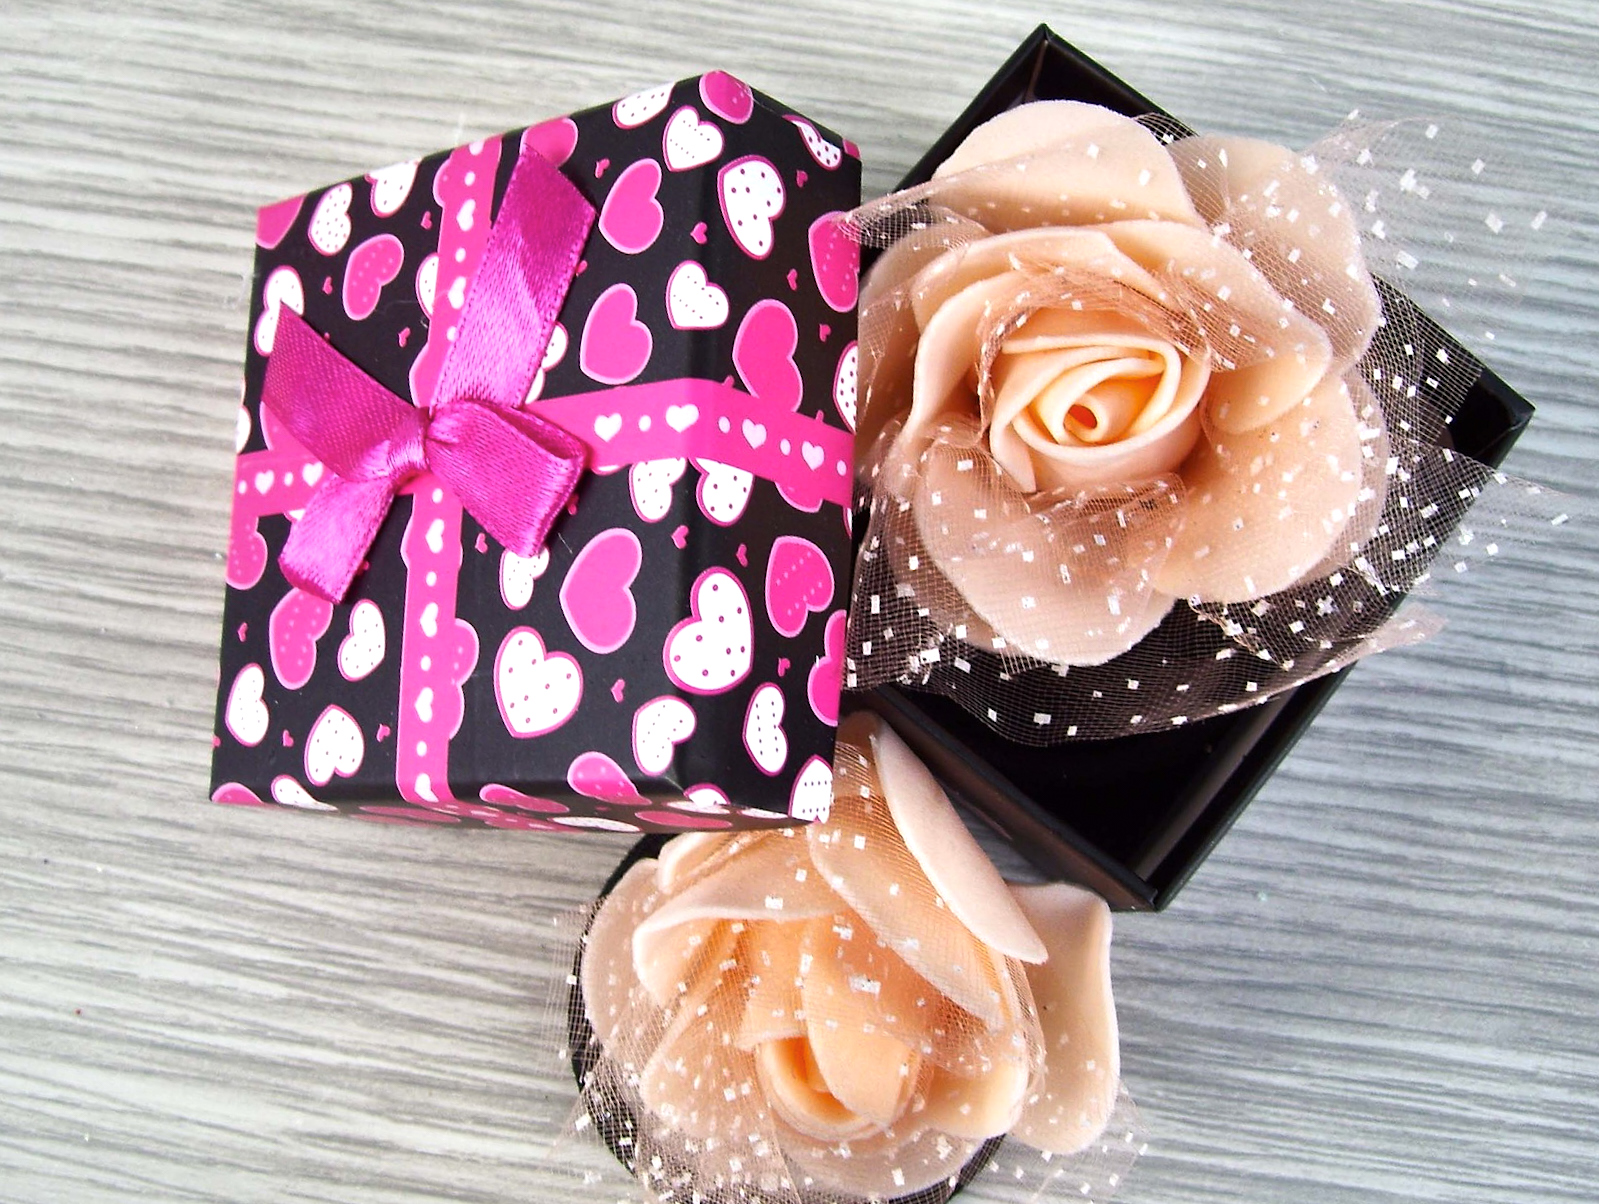 pink gift ideas